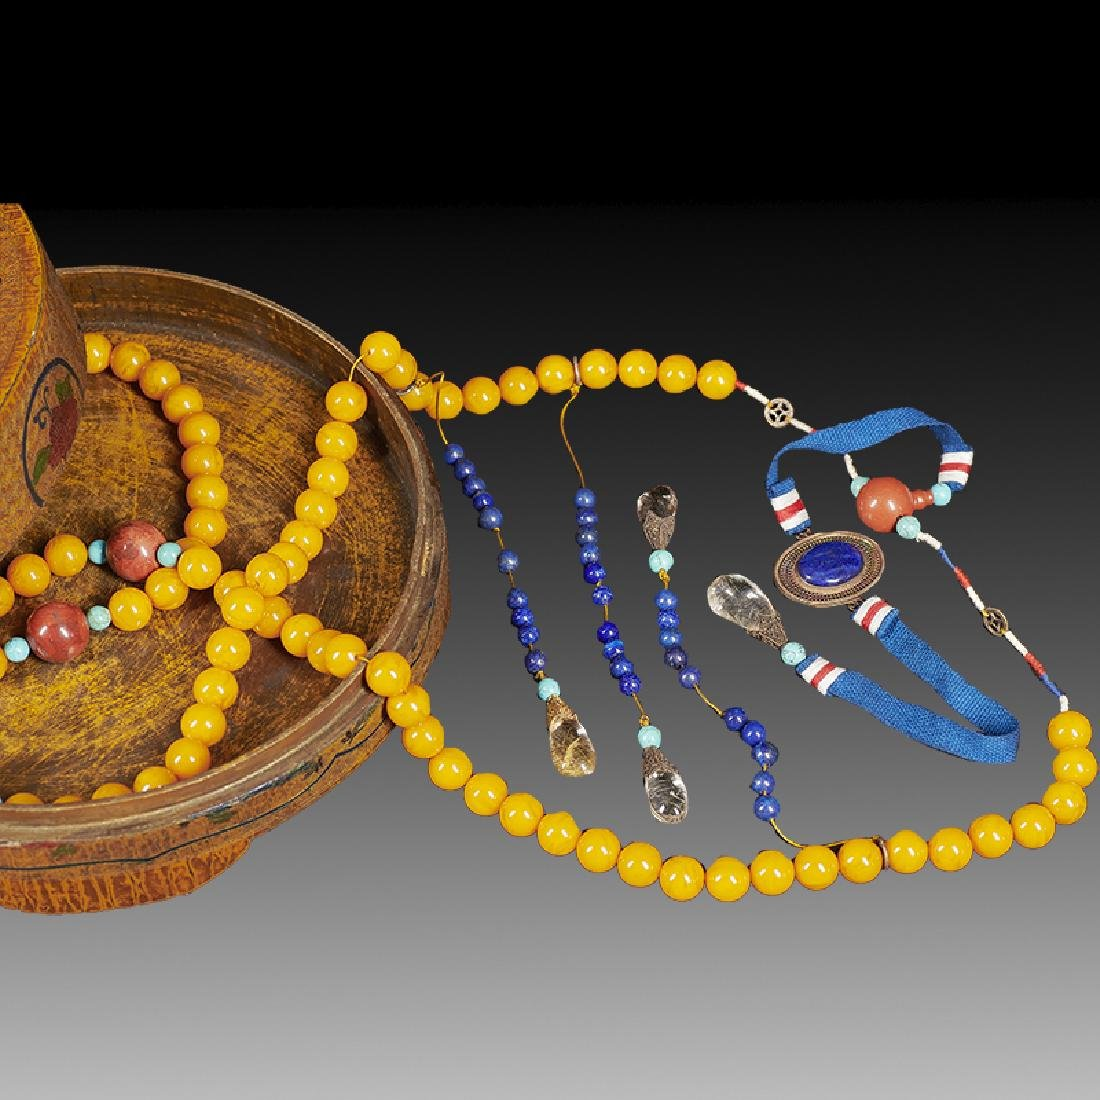 Chinese Amber Court Necklace and Box - 2